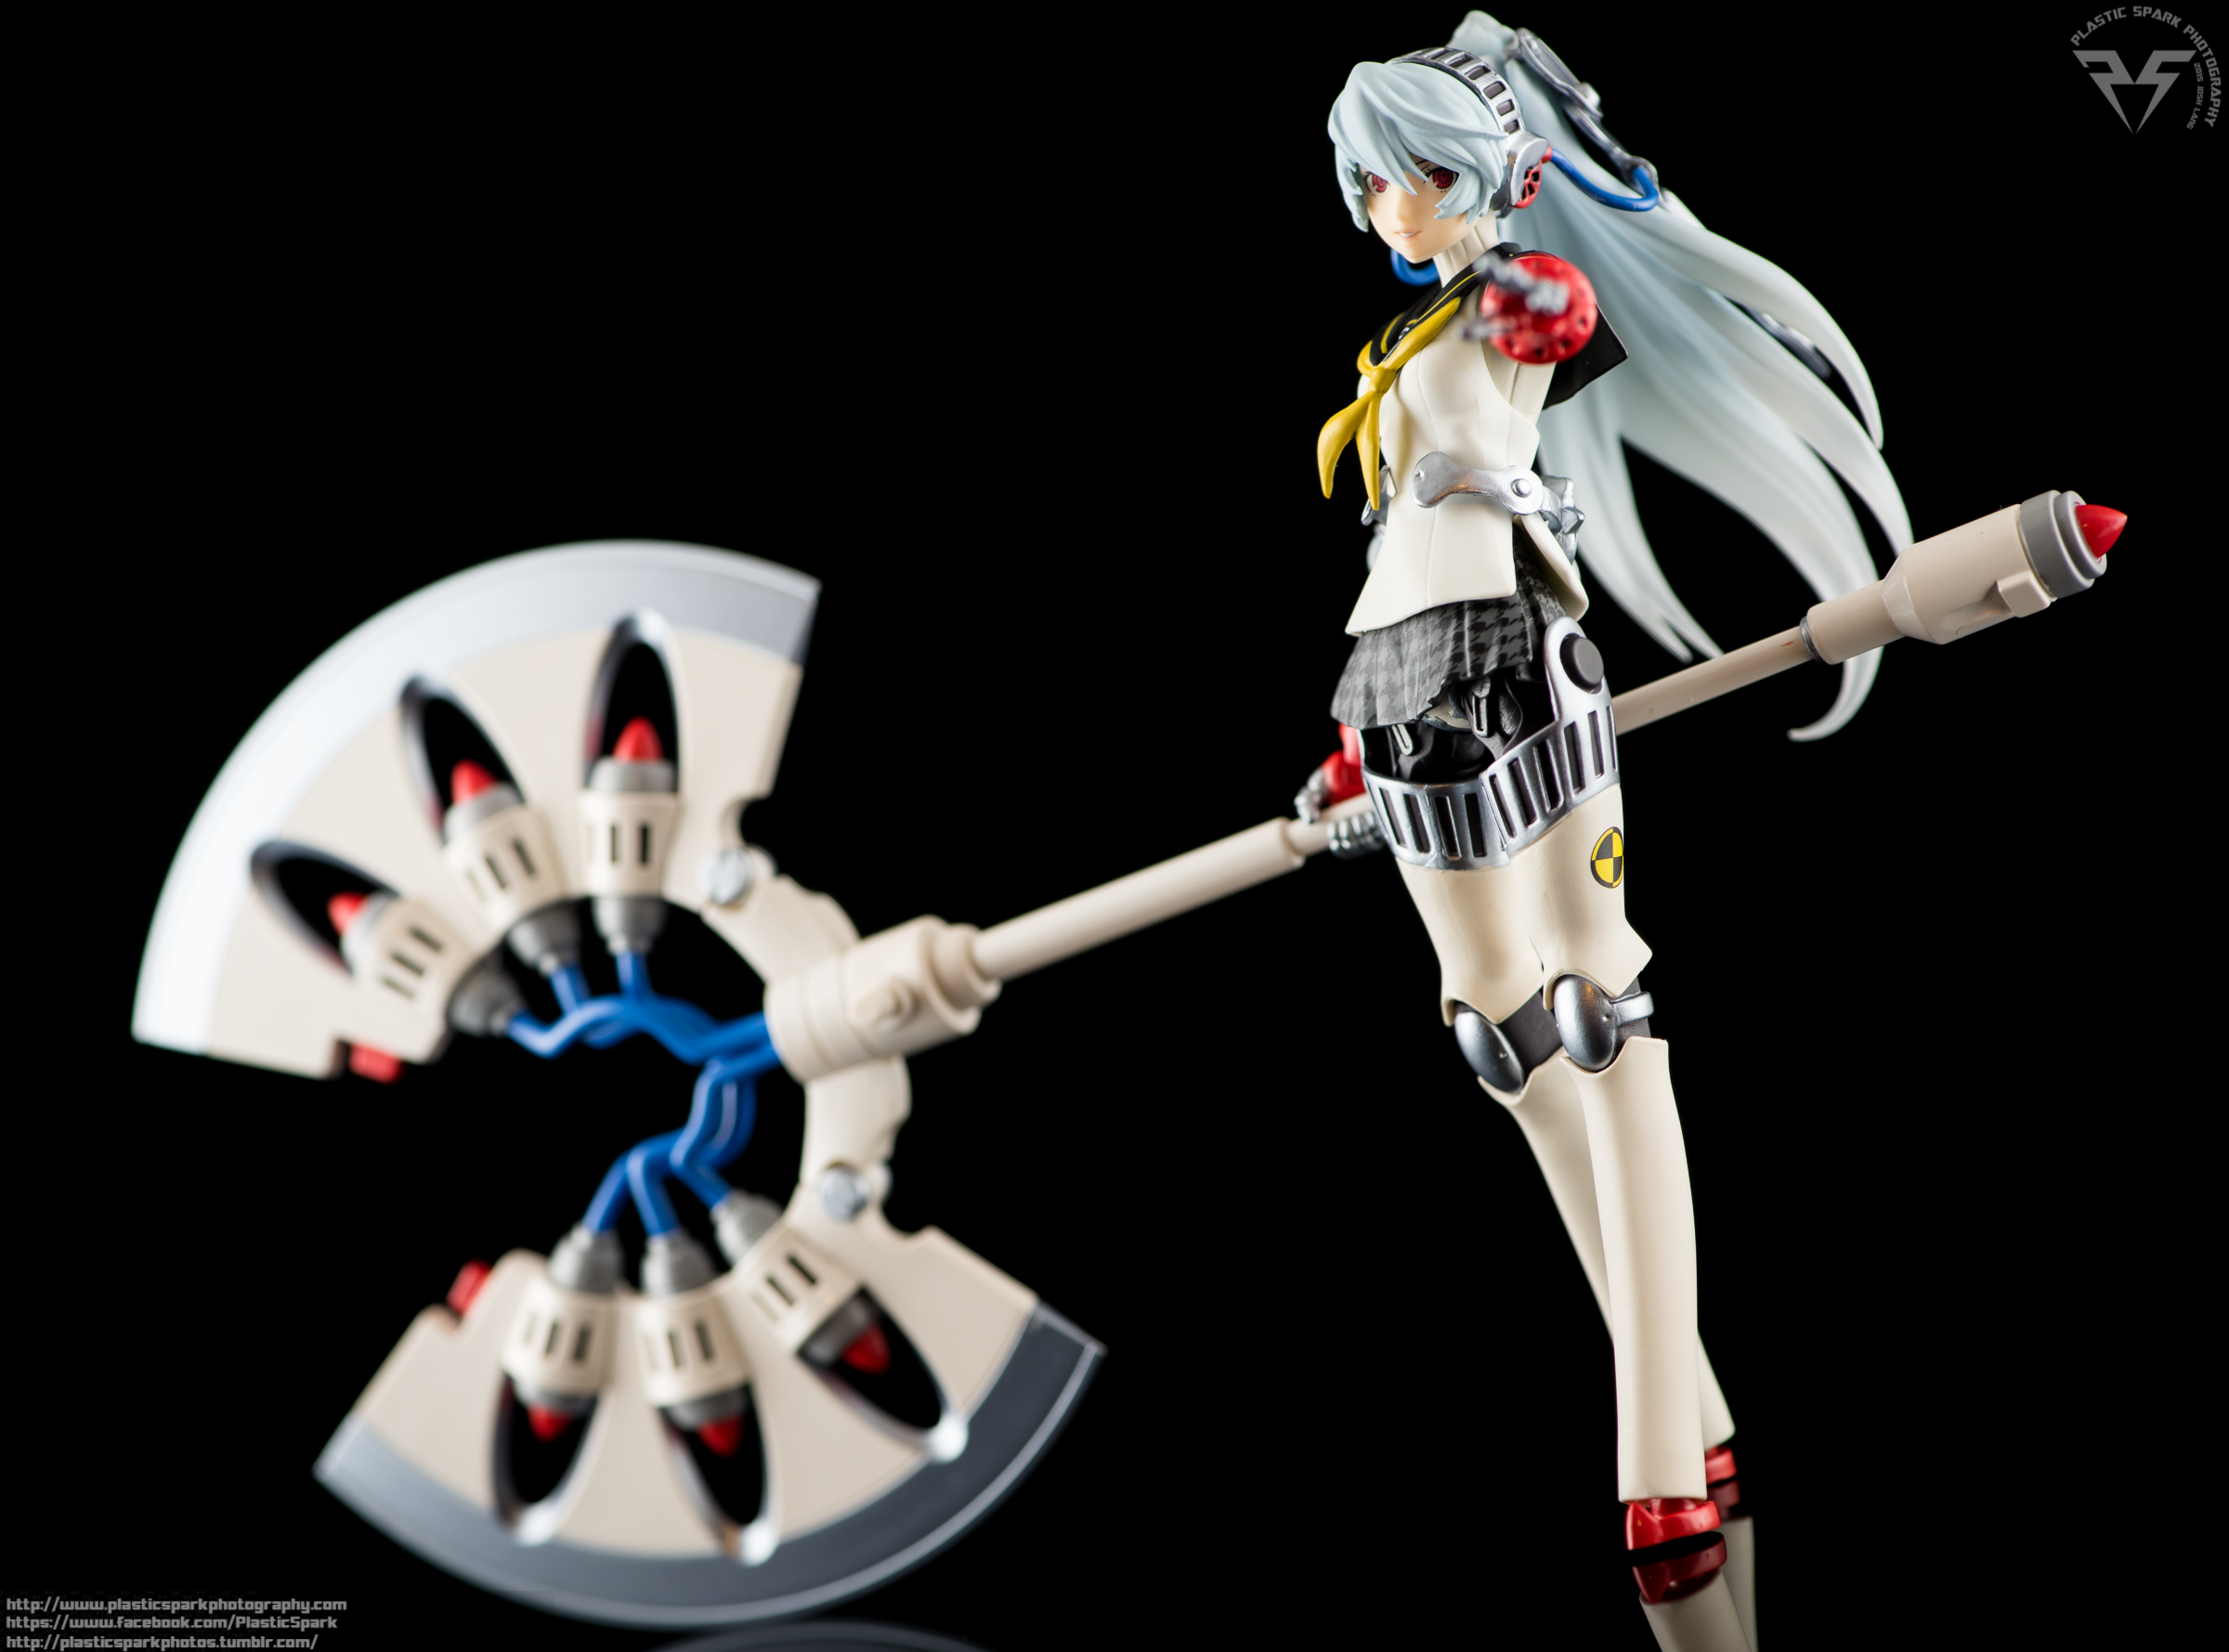 Figma-Labrys-(1-of-33).png